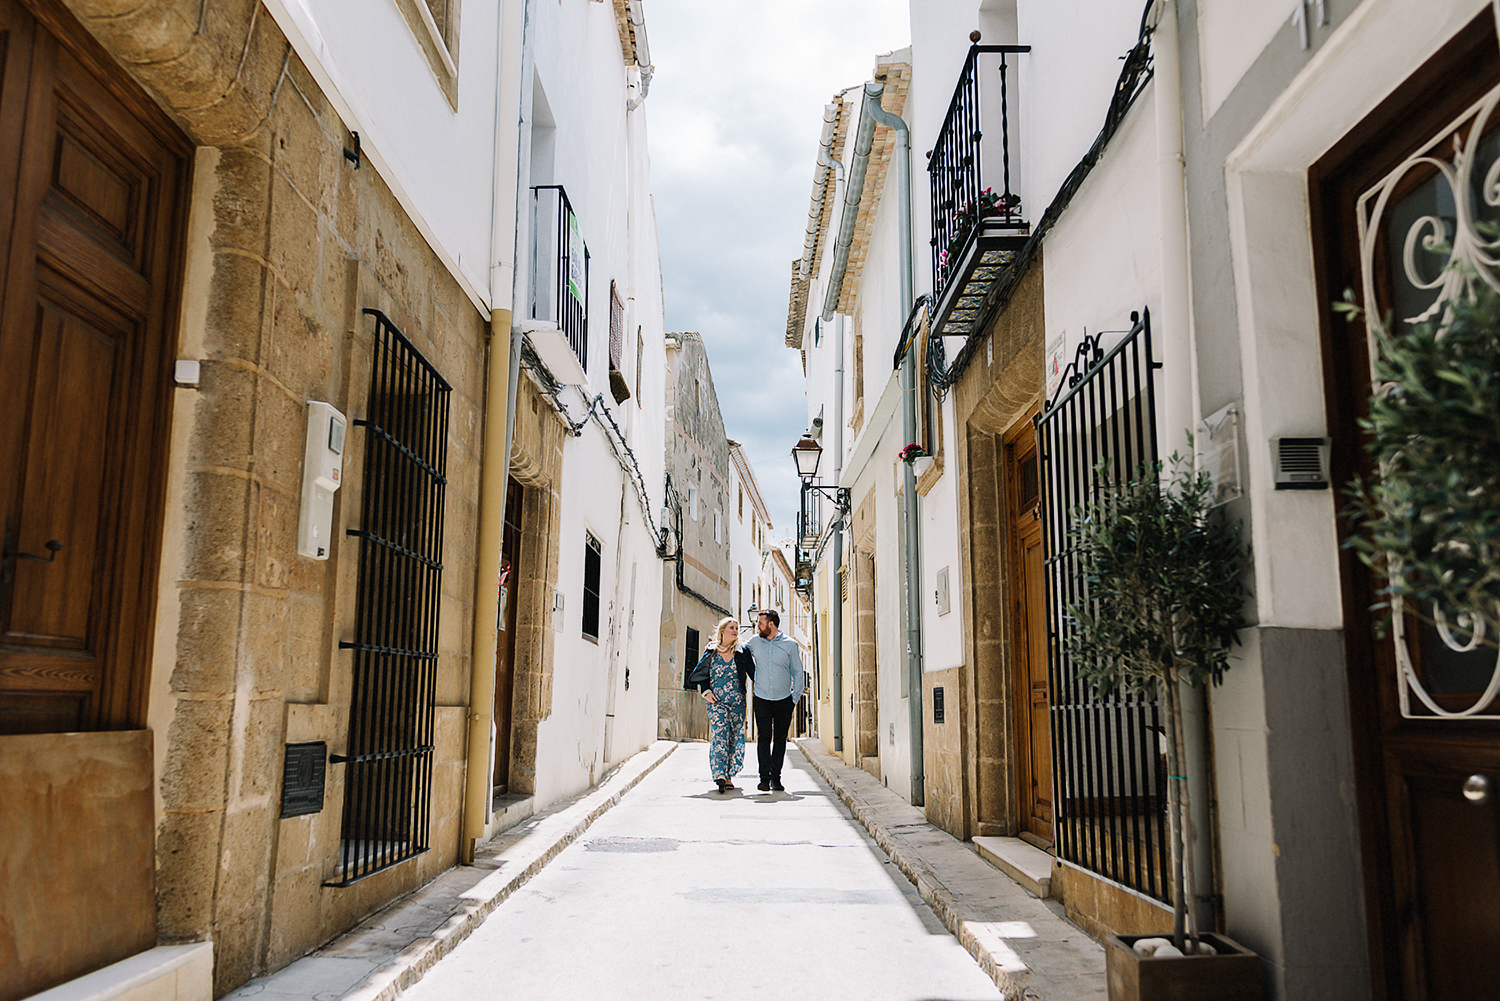 spanish-engagement-session-valencia-spain-toronto-wedding-photographer-ryanne-hollies-photography-old-town-jaxier-old-spanish-architecture-intimate-candid-real-moment-between-couple-romantic-walking-candid-sun-kissed.jpg